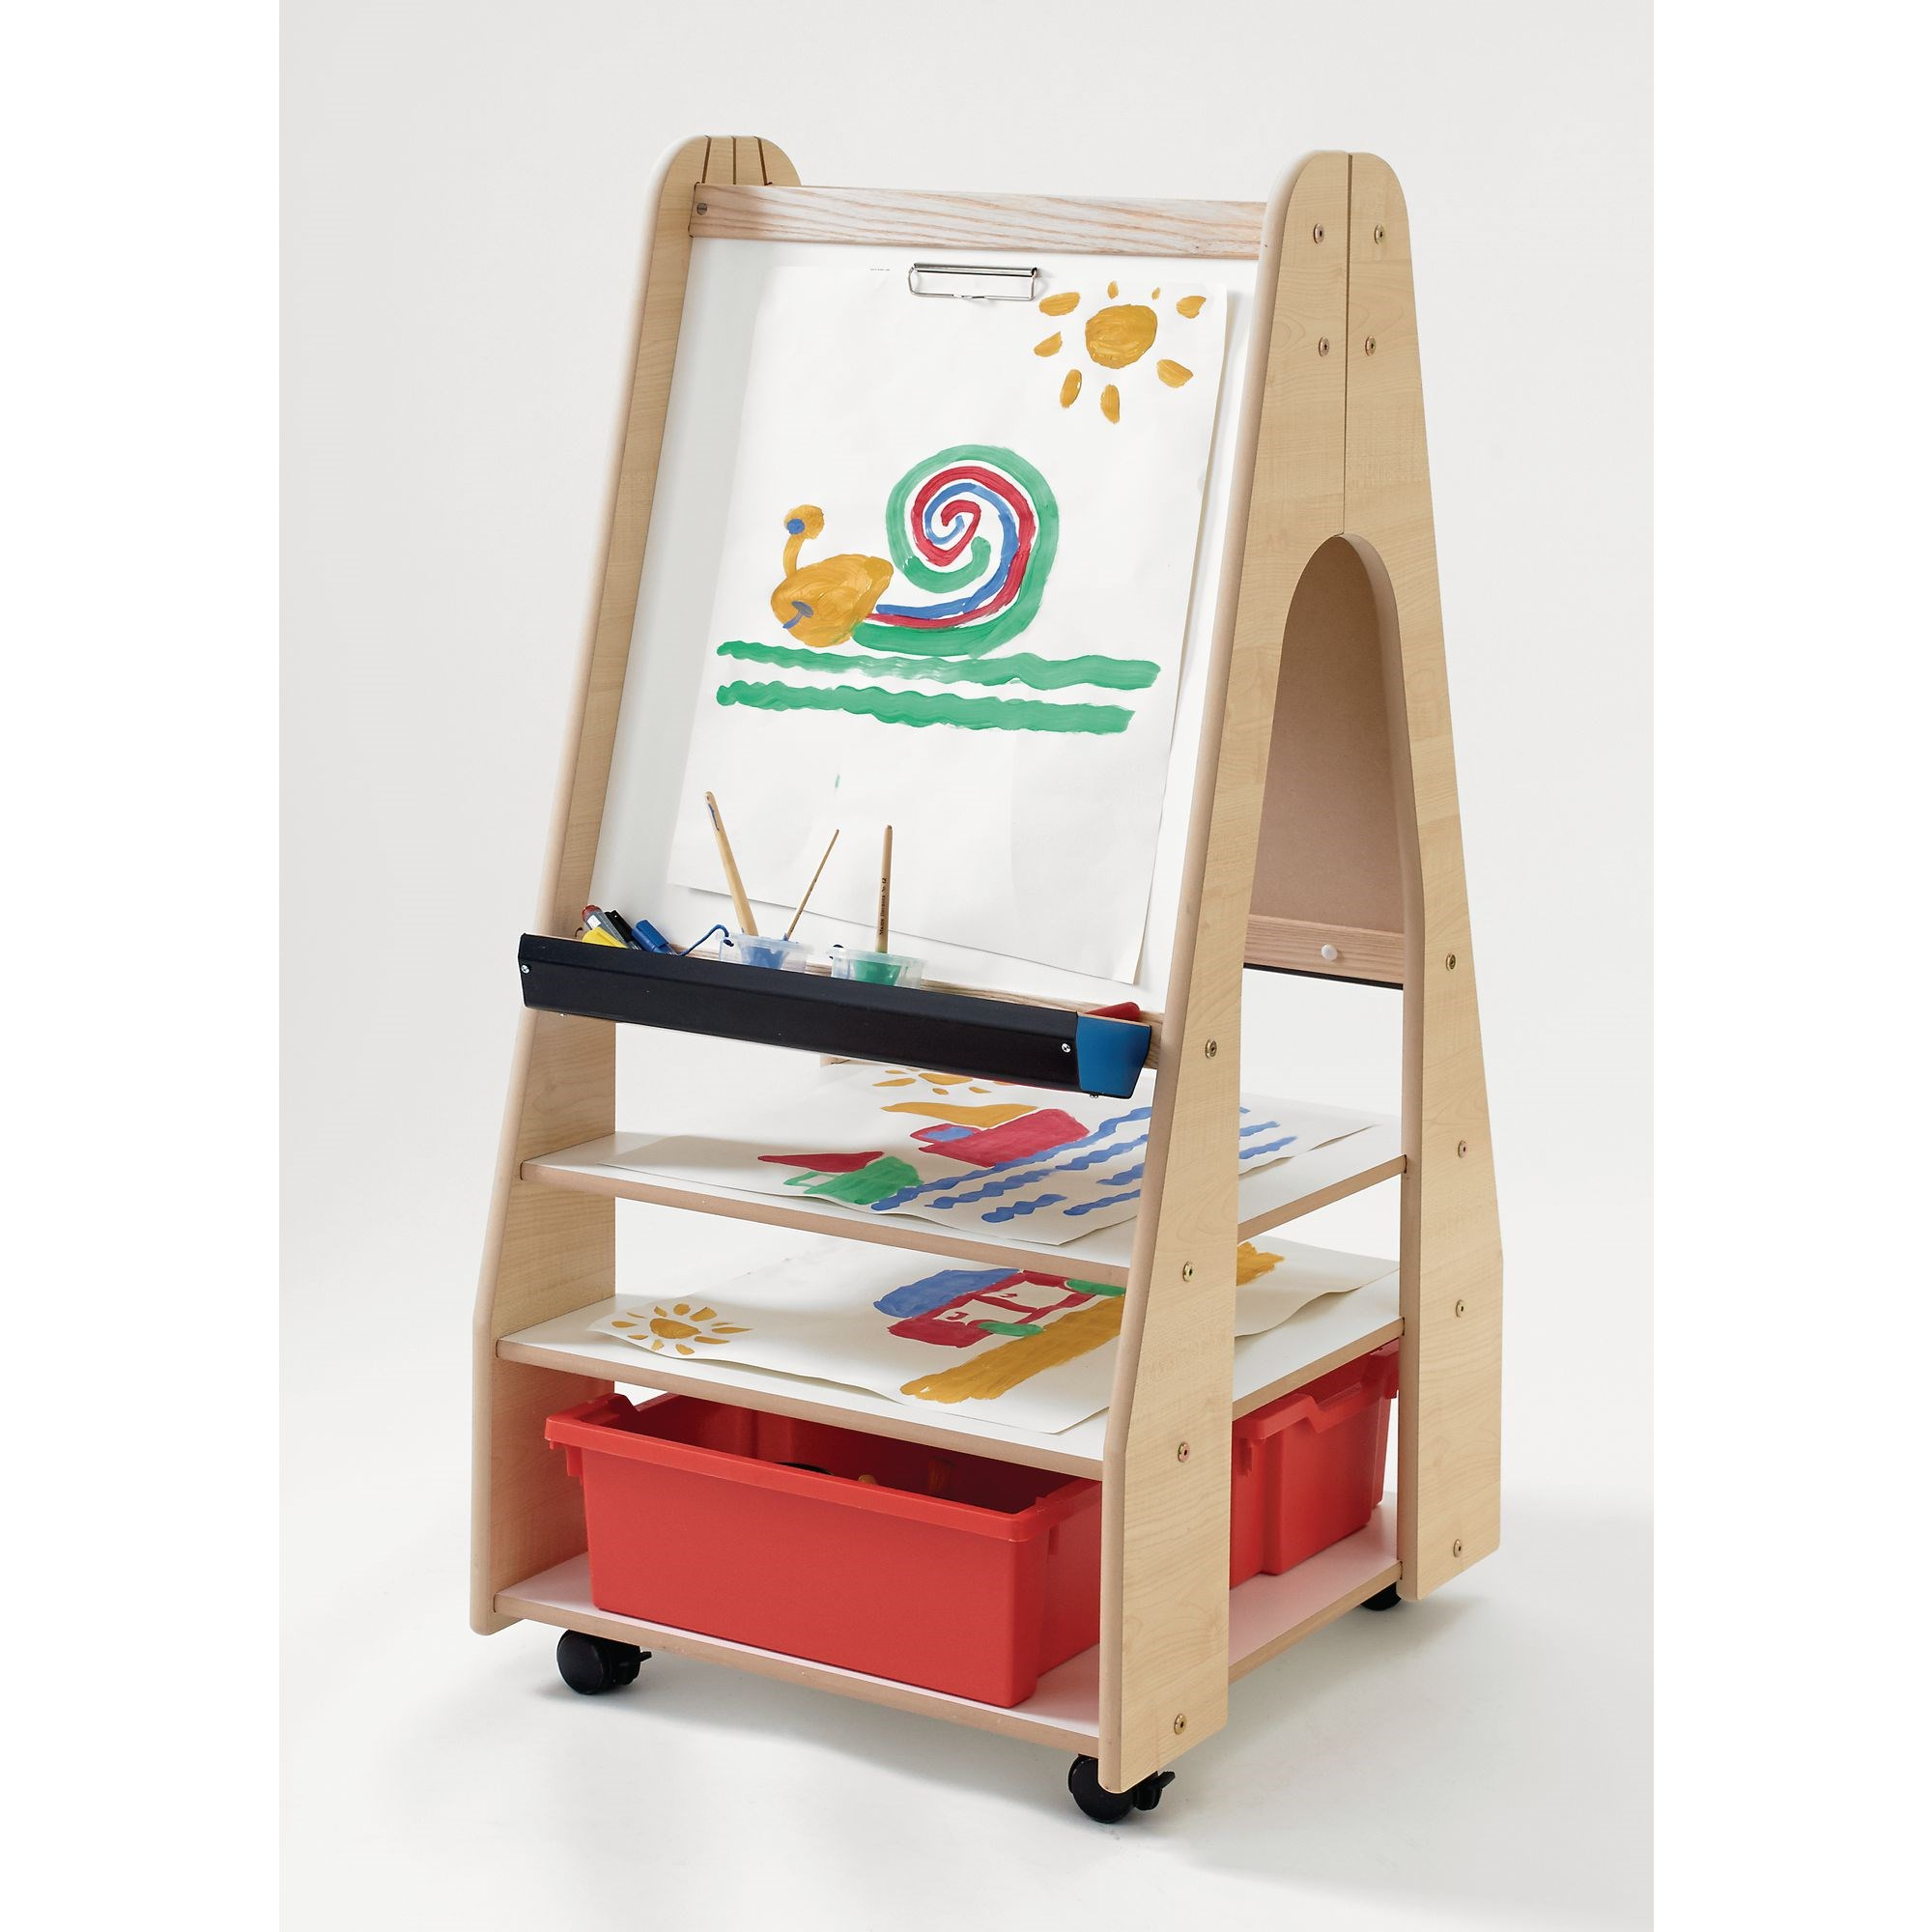 Millhouse - Mobile Storage Easel - Two Sided